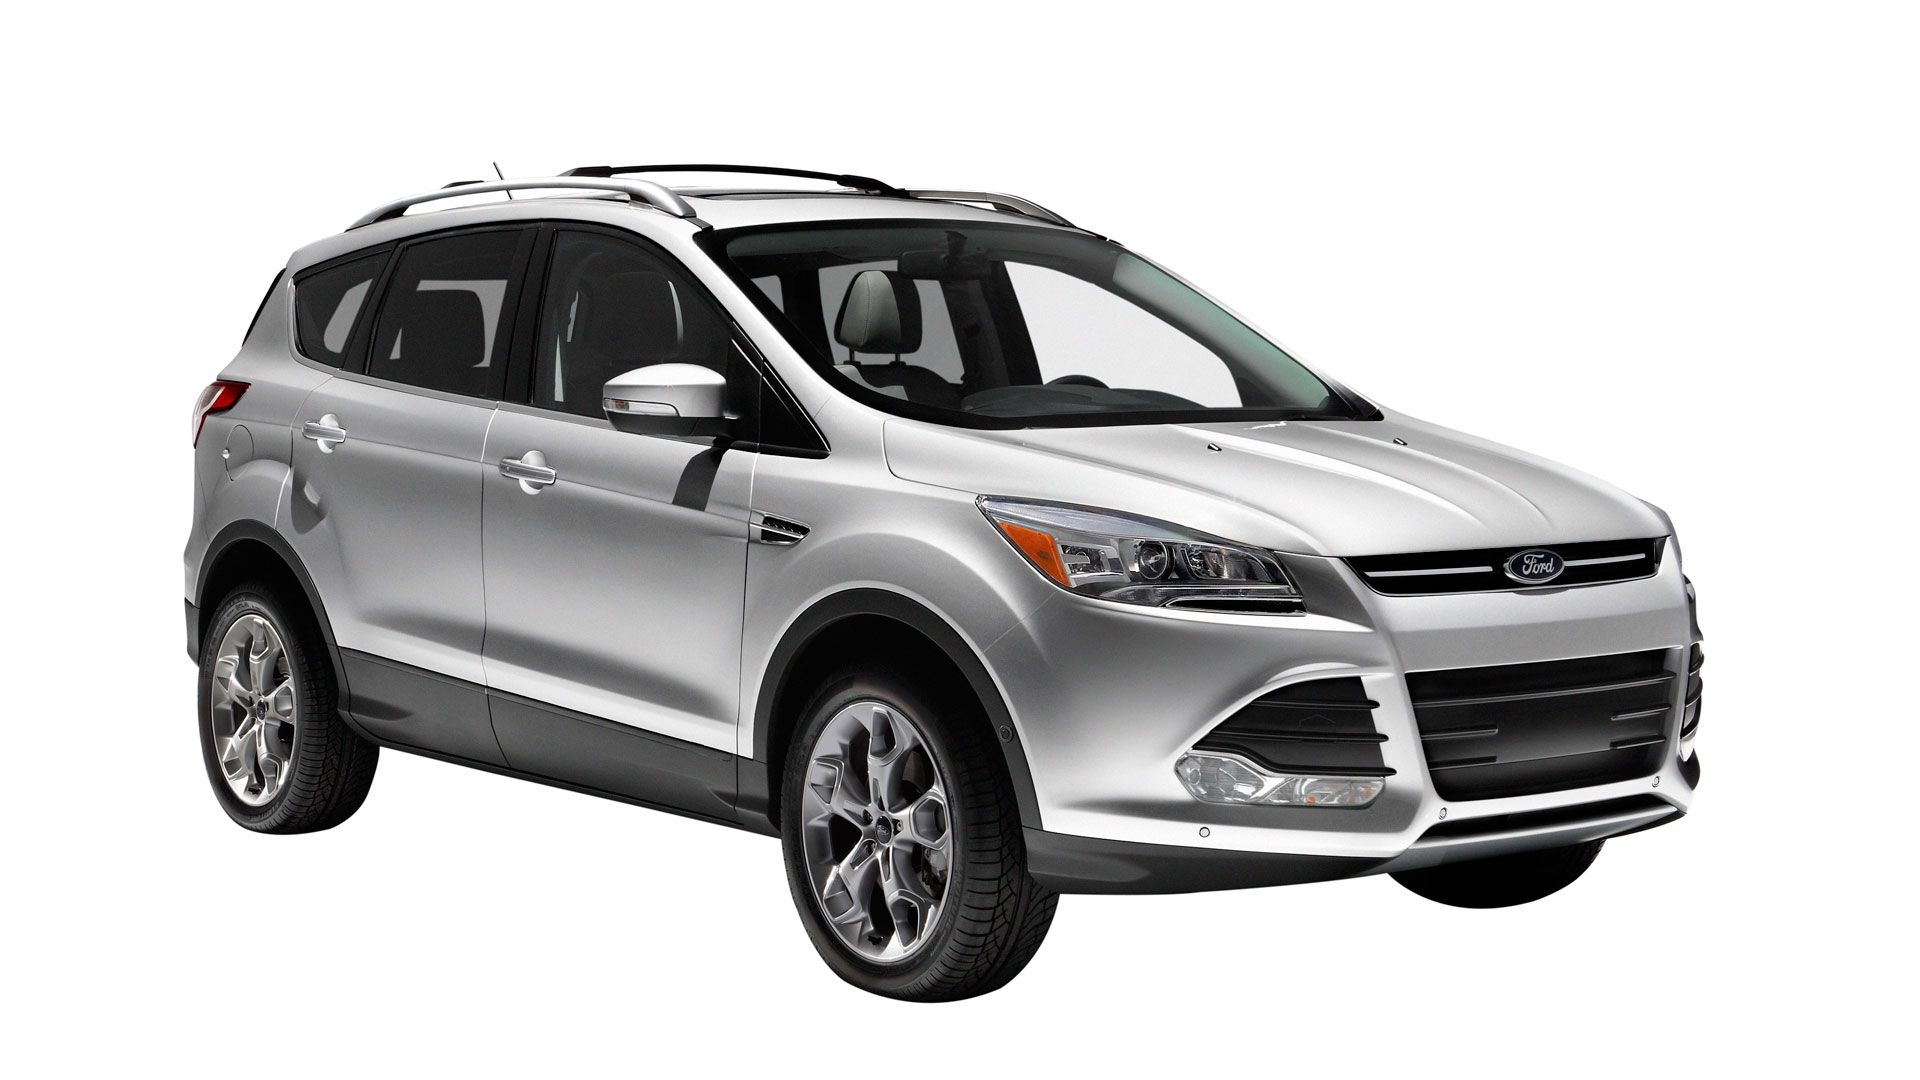 Best Cars For Women 2013 Redbook Auto Awards 2013